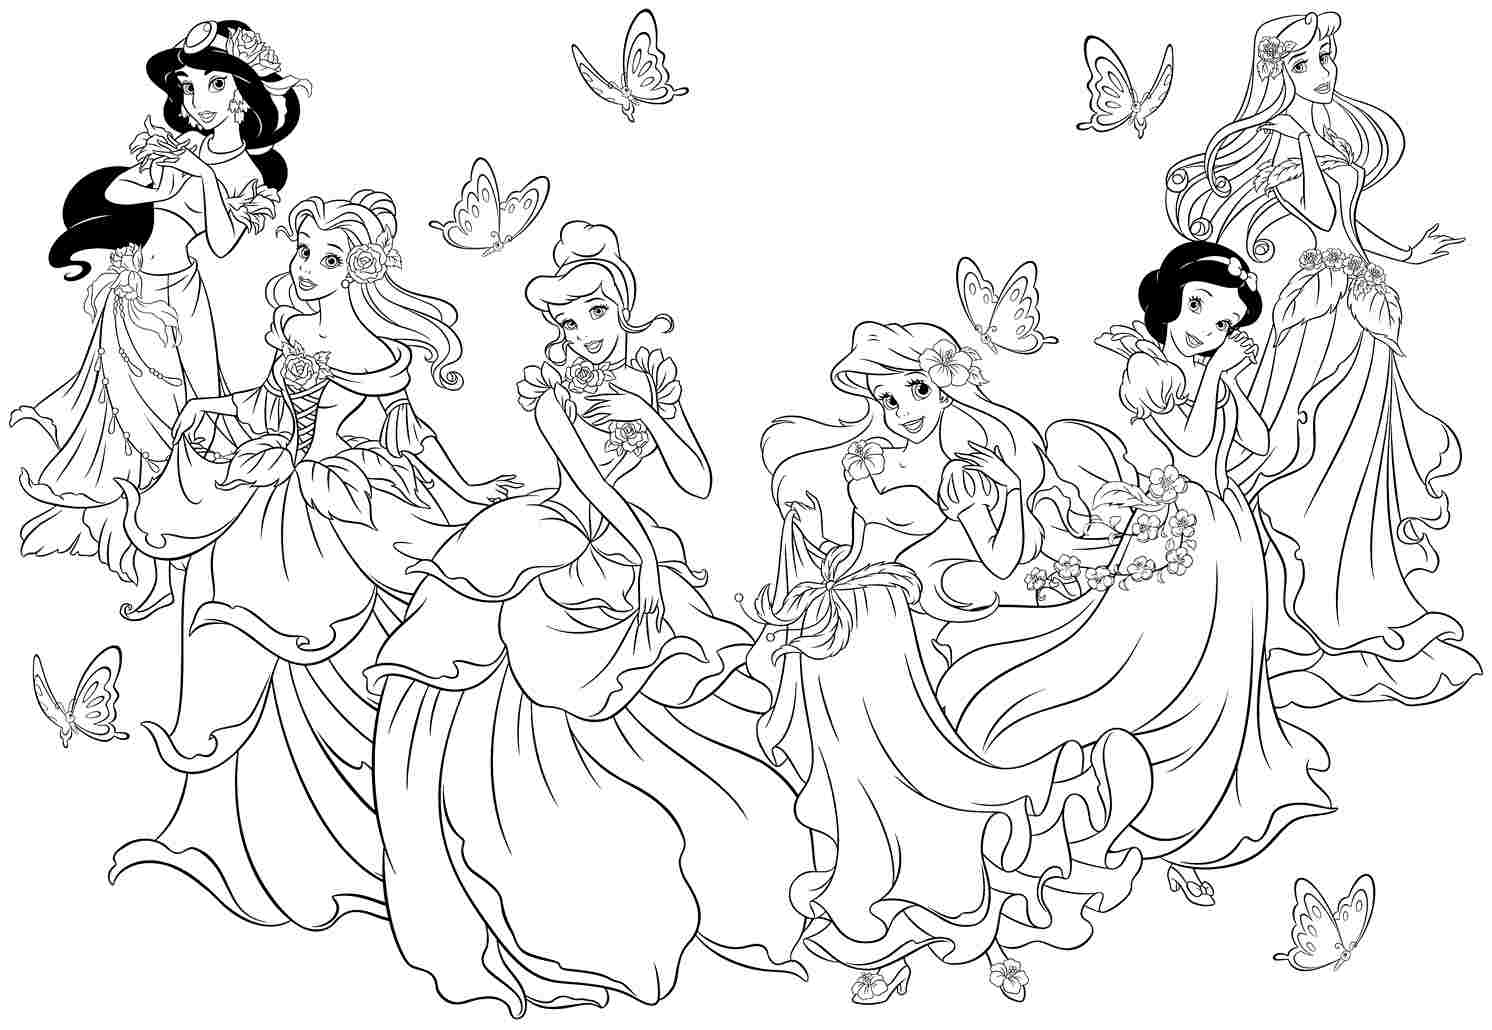 Disney Princess printable page for kids